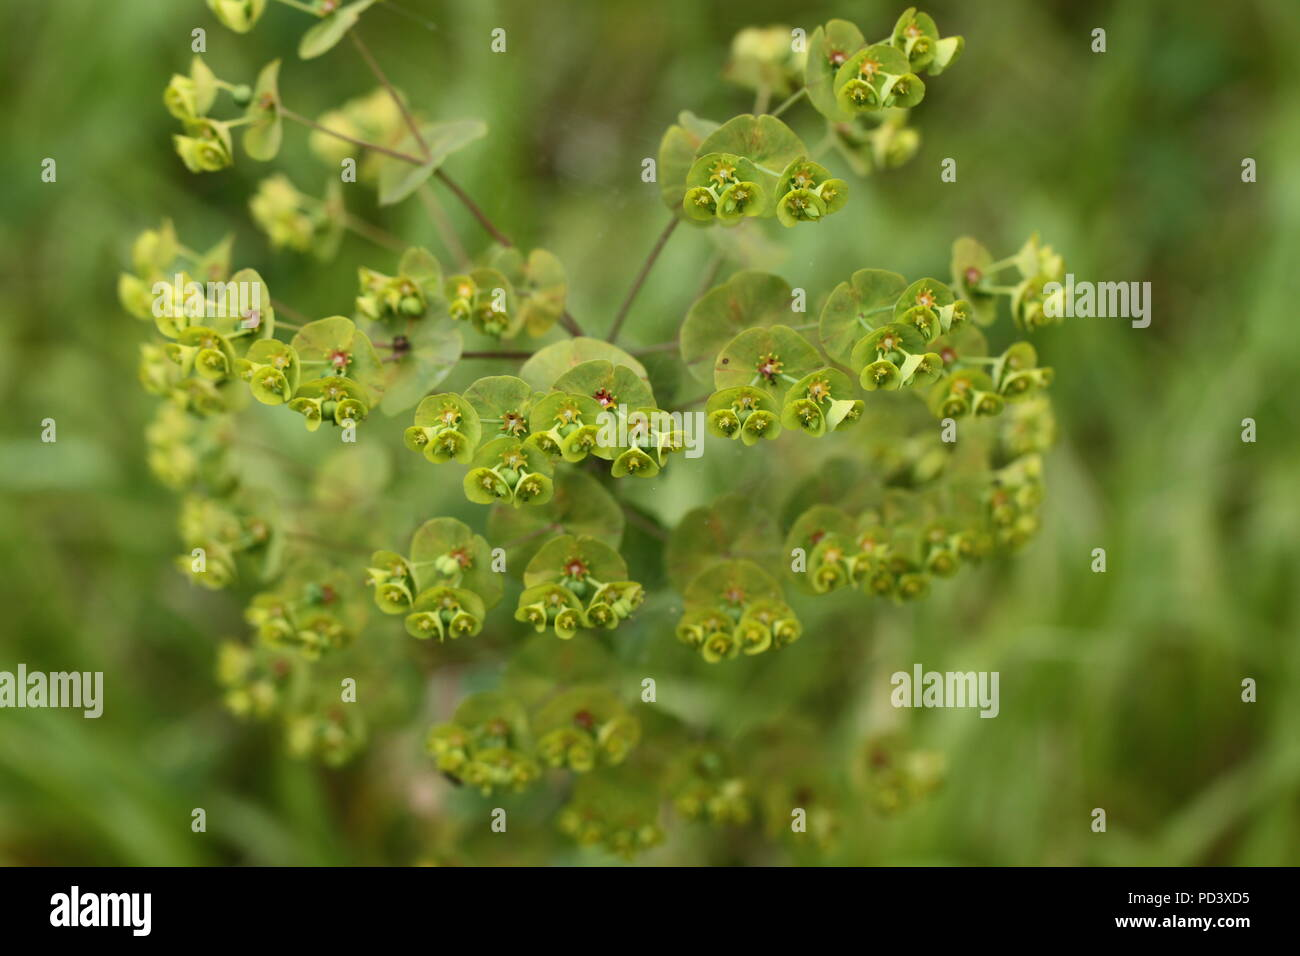 Wood Spurge (Euphorbia amygdaloides) in flower in an Ancient Woodland in Hampshire. Taken in 2011. - Stock Image